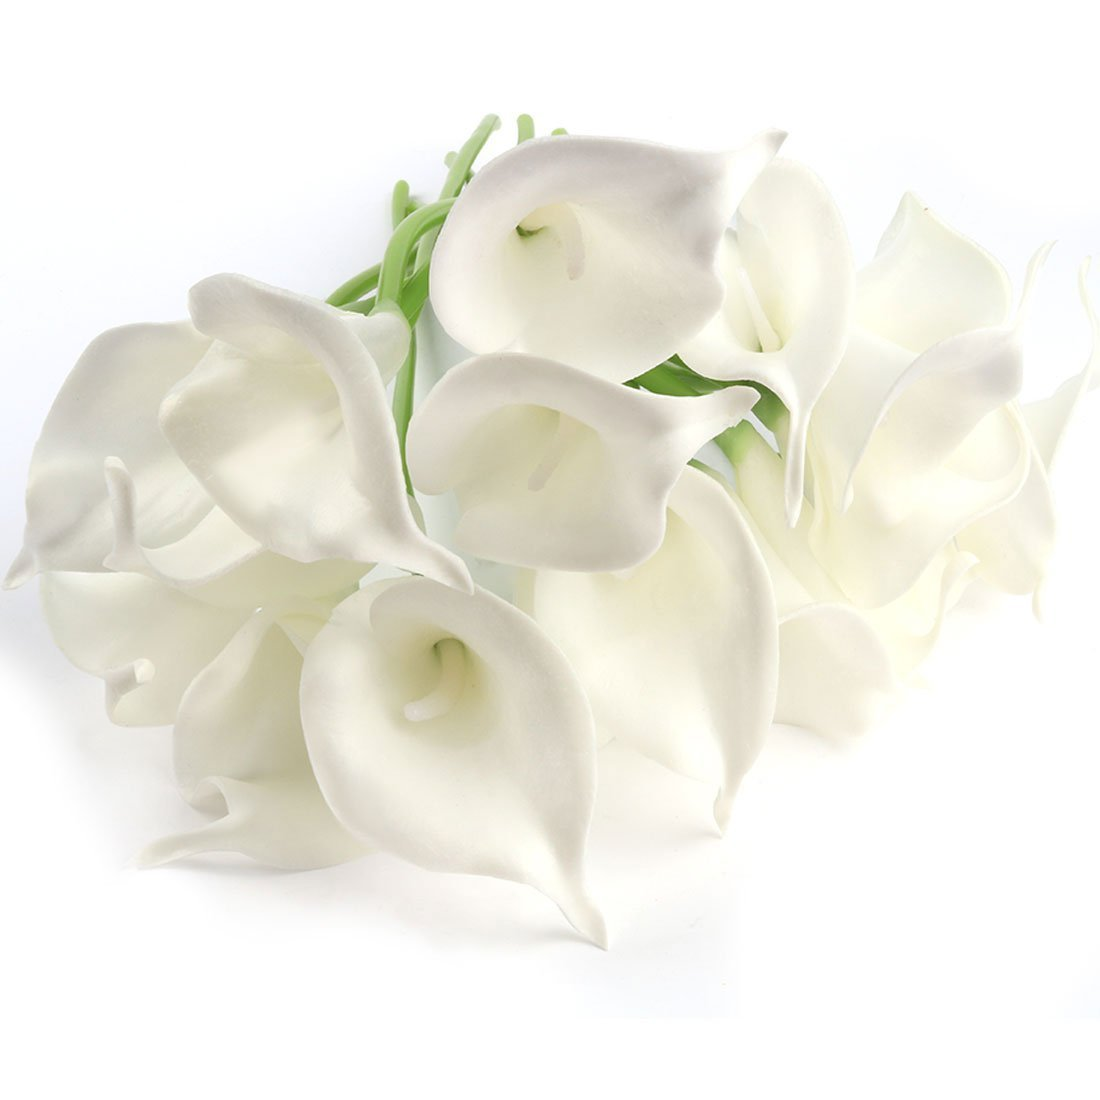 Amazon 20 pcs artificial calla lily flowes muyee real touch amazon 20 pcs artificial calla lily flowes muyee real touch fake flowers wedding bouquets home decorations white home kitchen izmirmasajfo